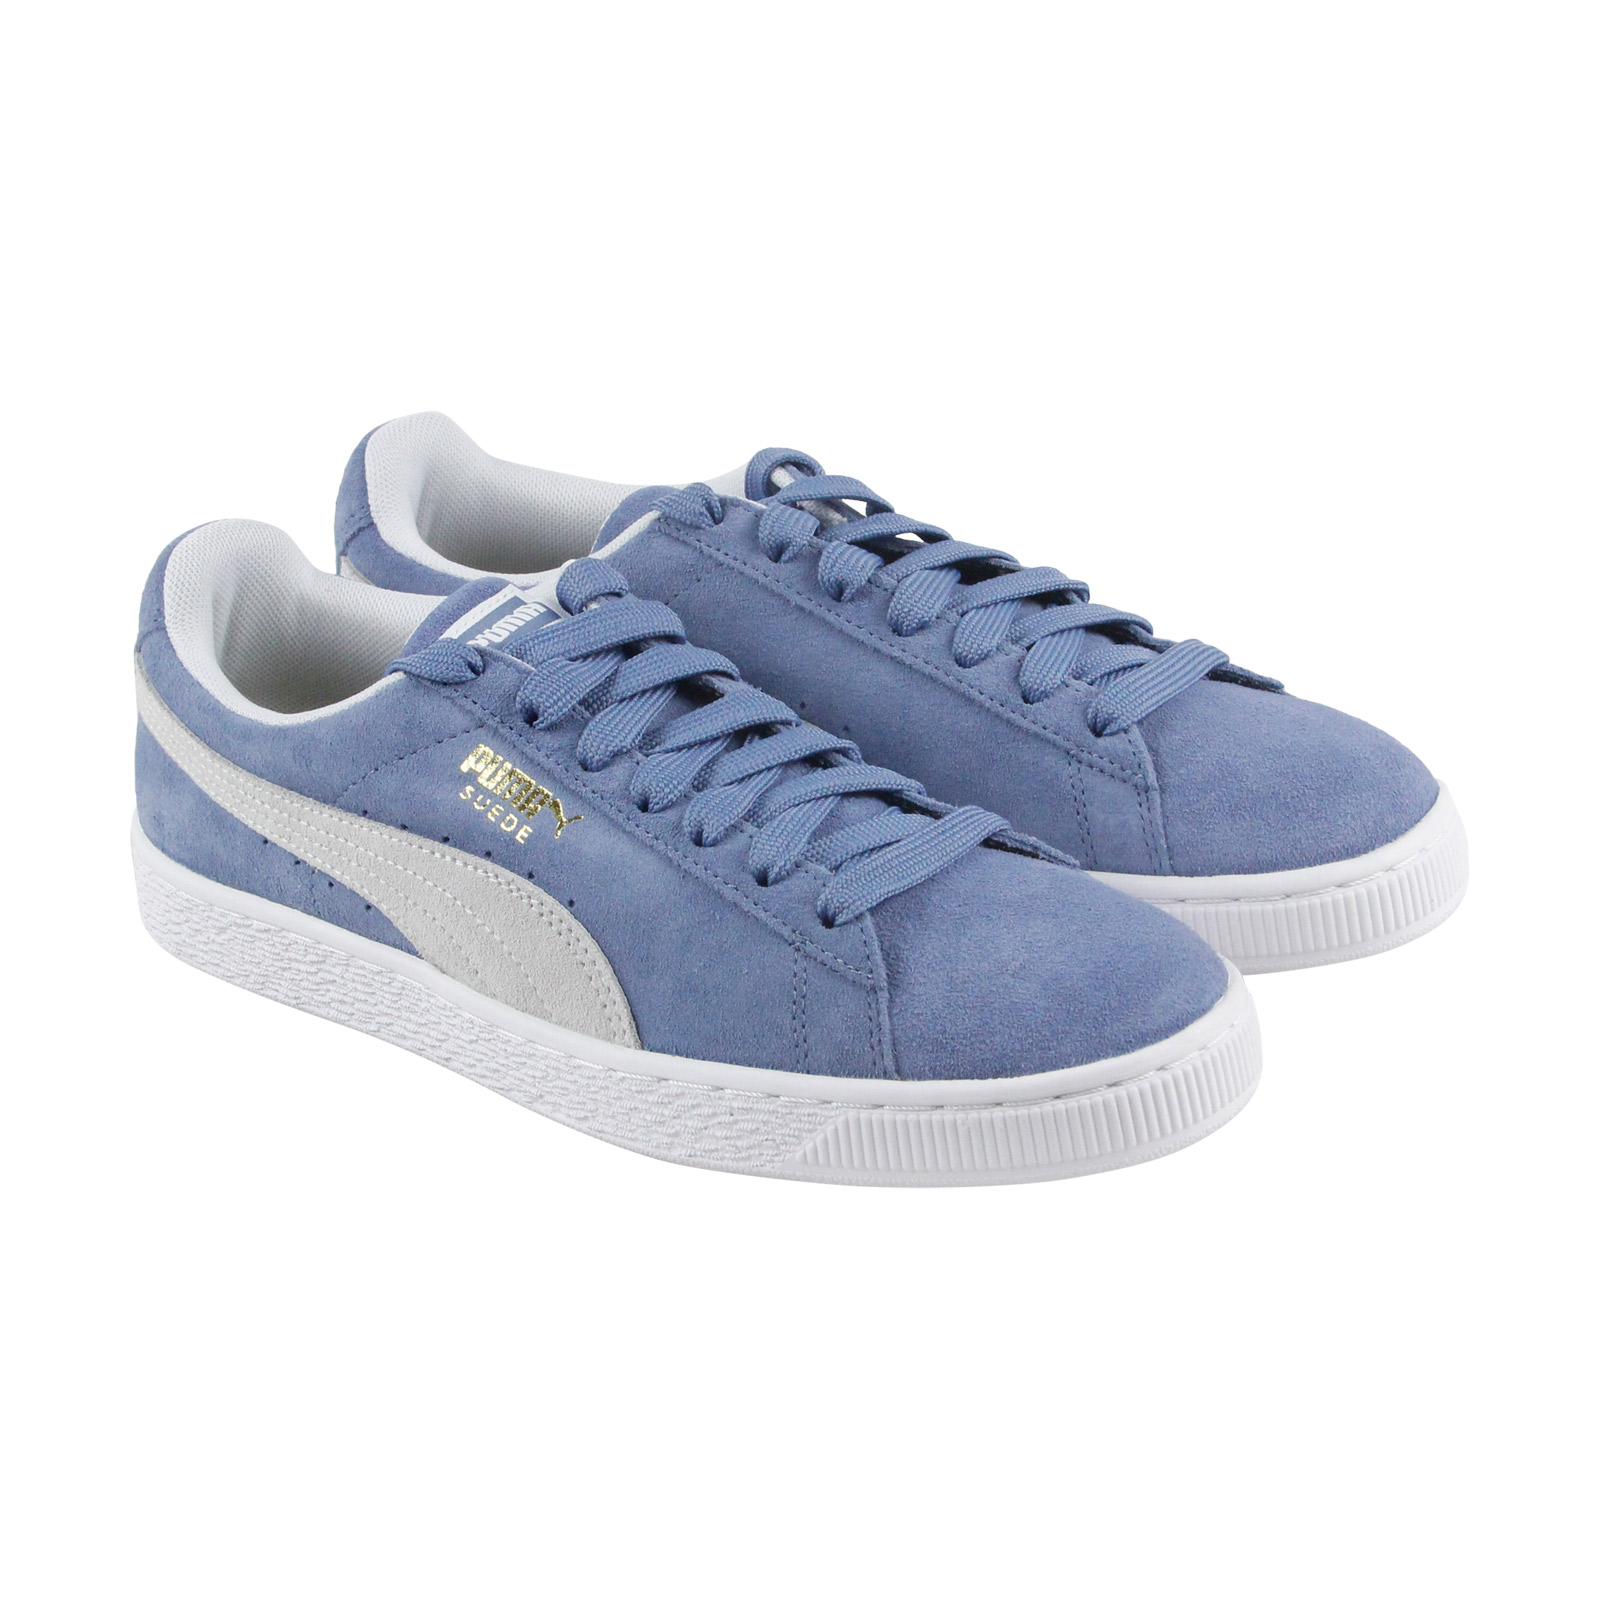 60b78a1b41d1 Image is loading Puma-Suede-Classic-Mens-Blue-Suede-Lace-Up-